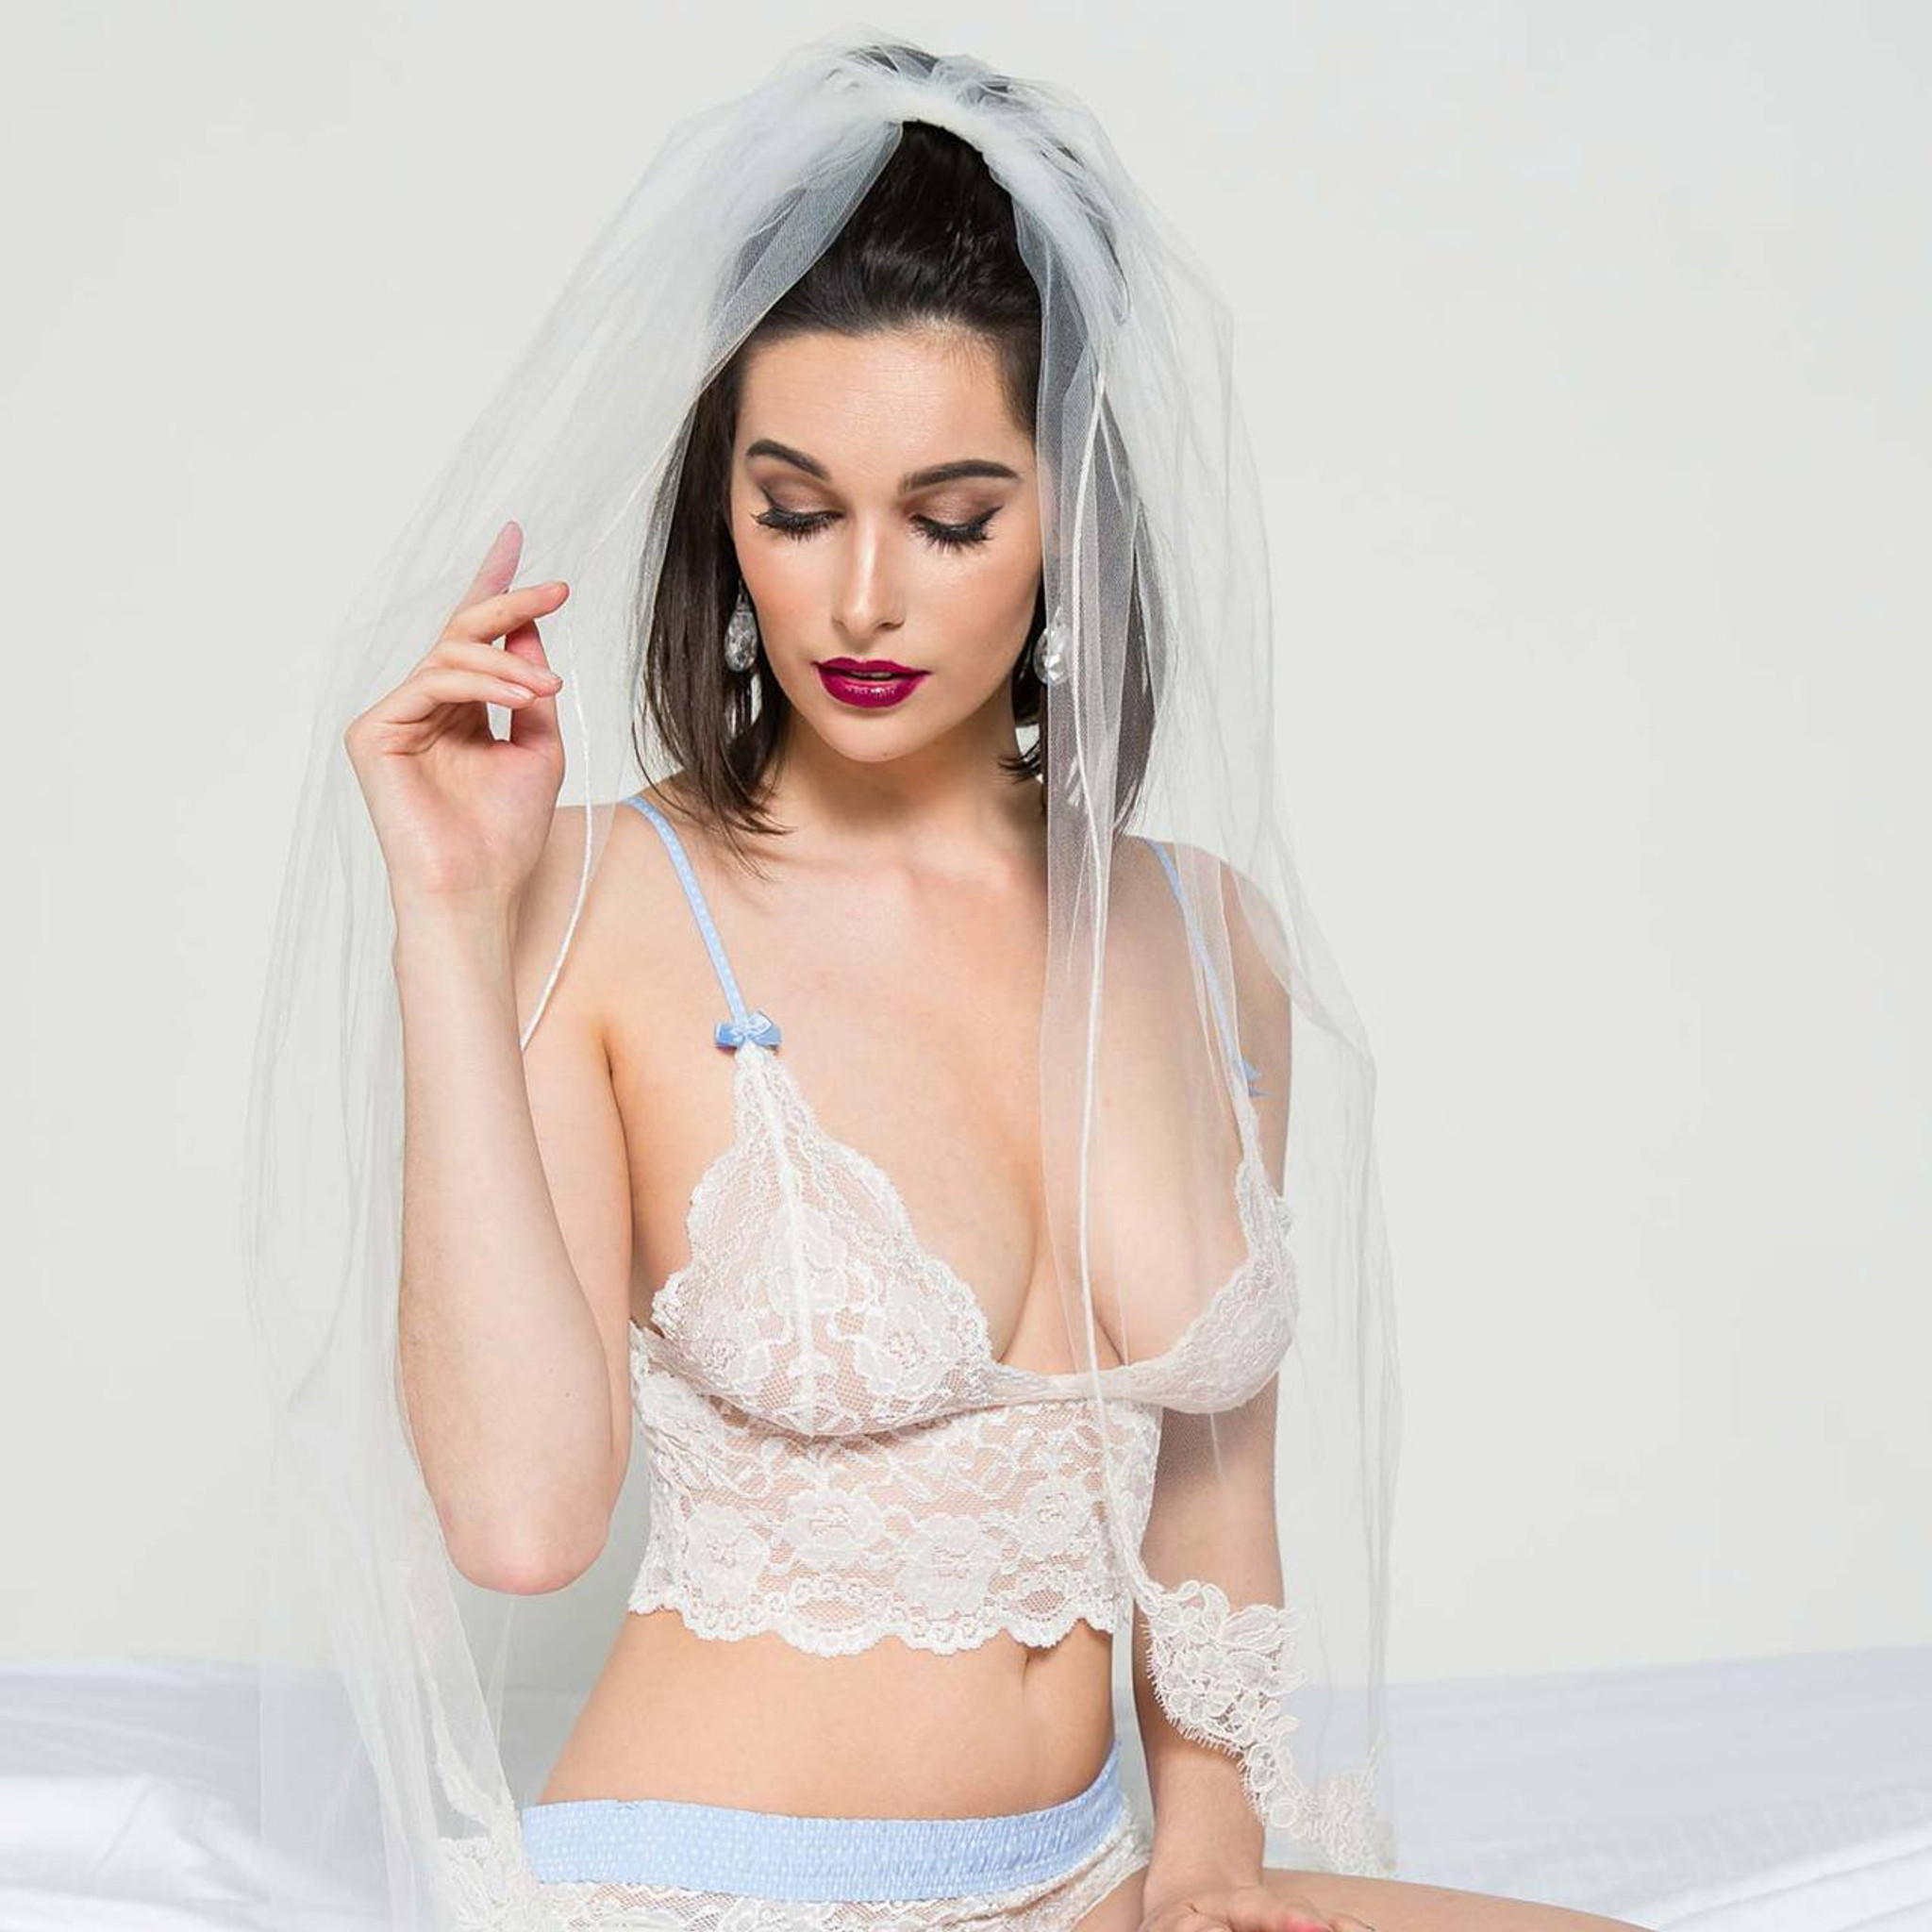 d4fa1b02d31 ... White Lace Bralette Camisole and matching White Lace Boxers make a beautiful  Wedding Lingerie Set ...